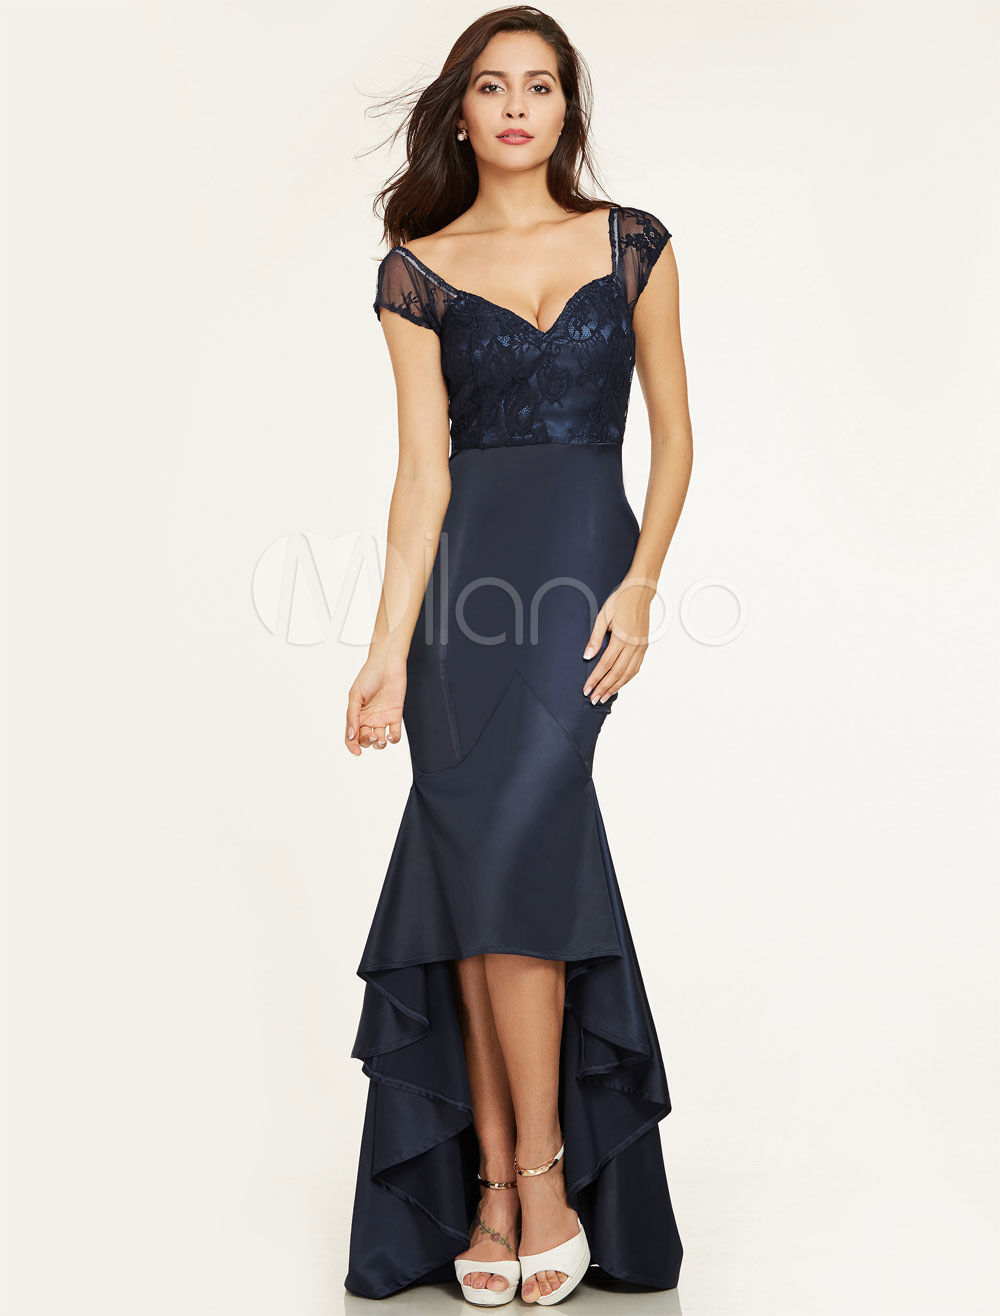 Prom Dresses Mermaid Dark Navy High Low Ruffles Lace Queen Anne Neck Satin Formal Occasion Dress